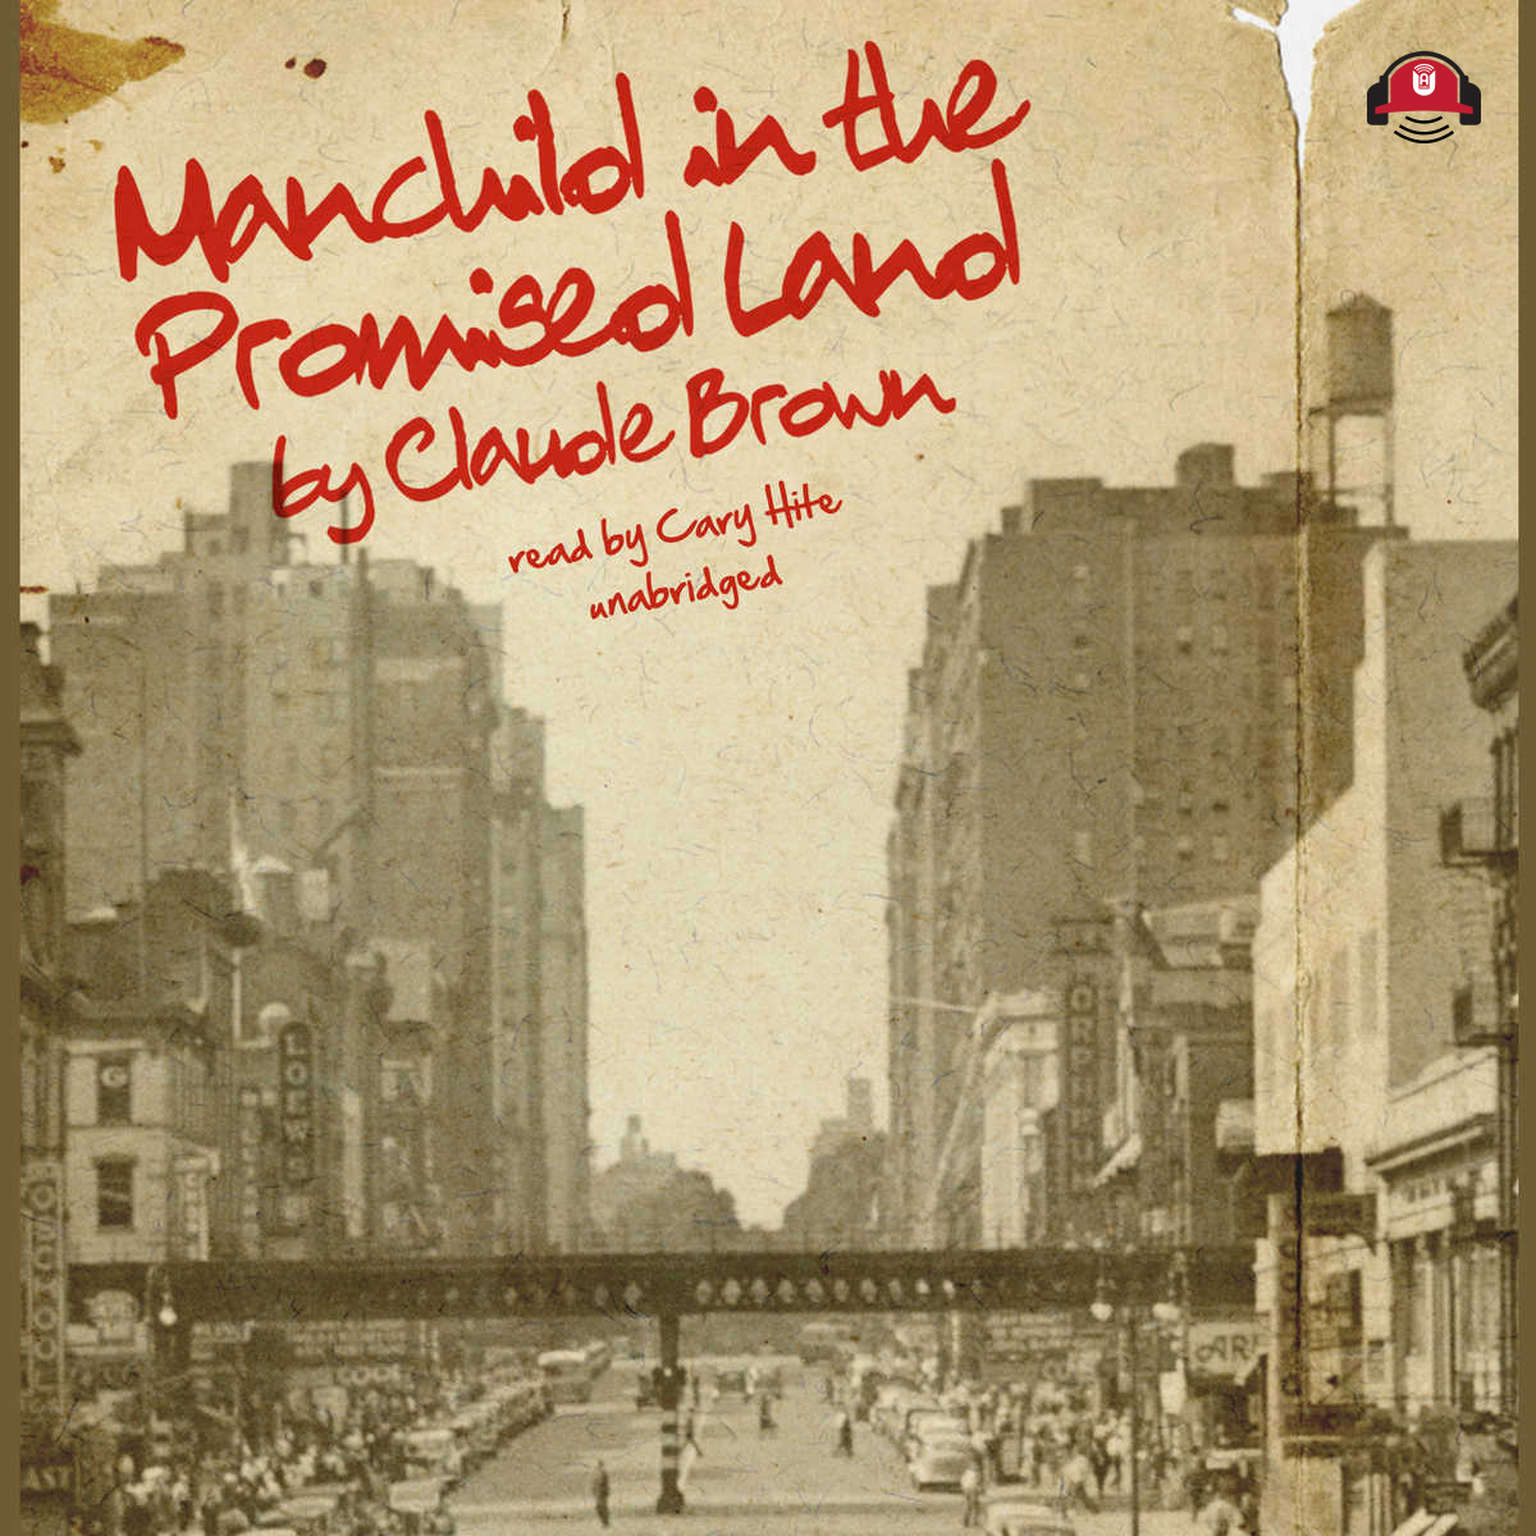 man child and the promised land essay Man-child in the promised land bill croke tweet  and the young man was known to read voraciously in the  where at age 12 everett won a school essay prize.